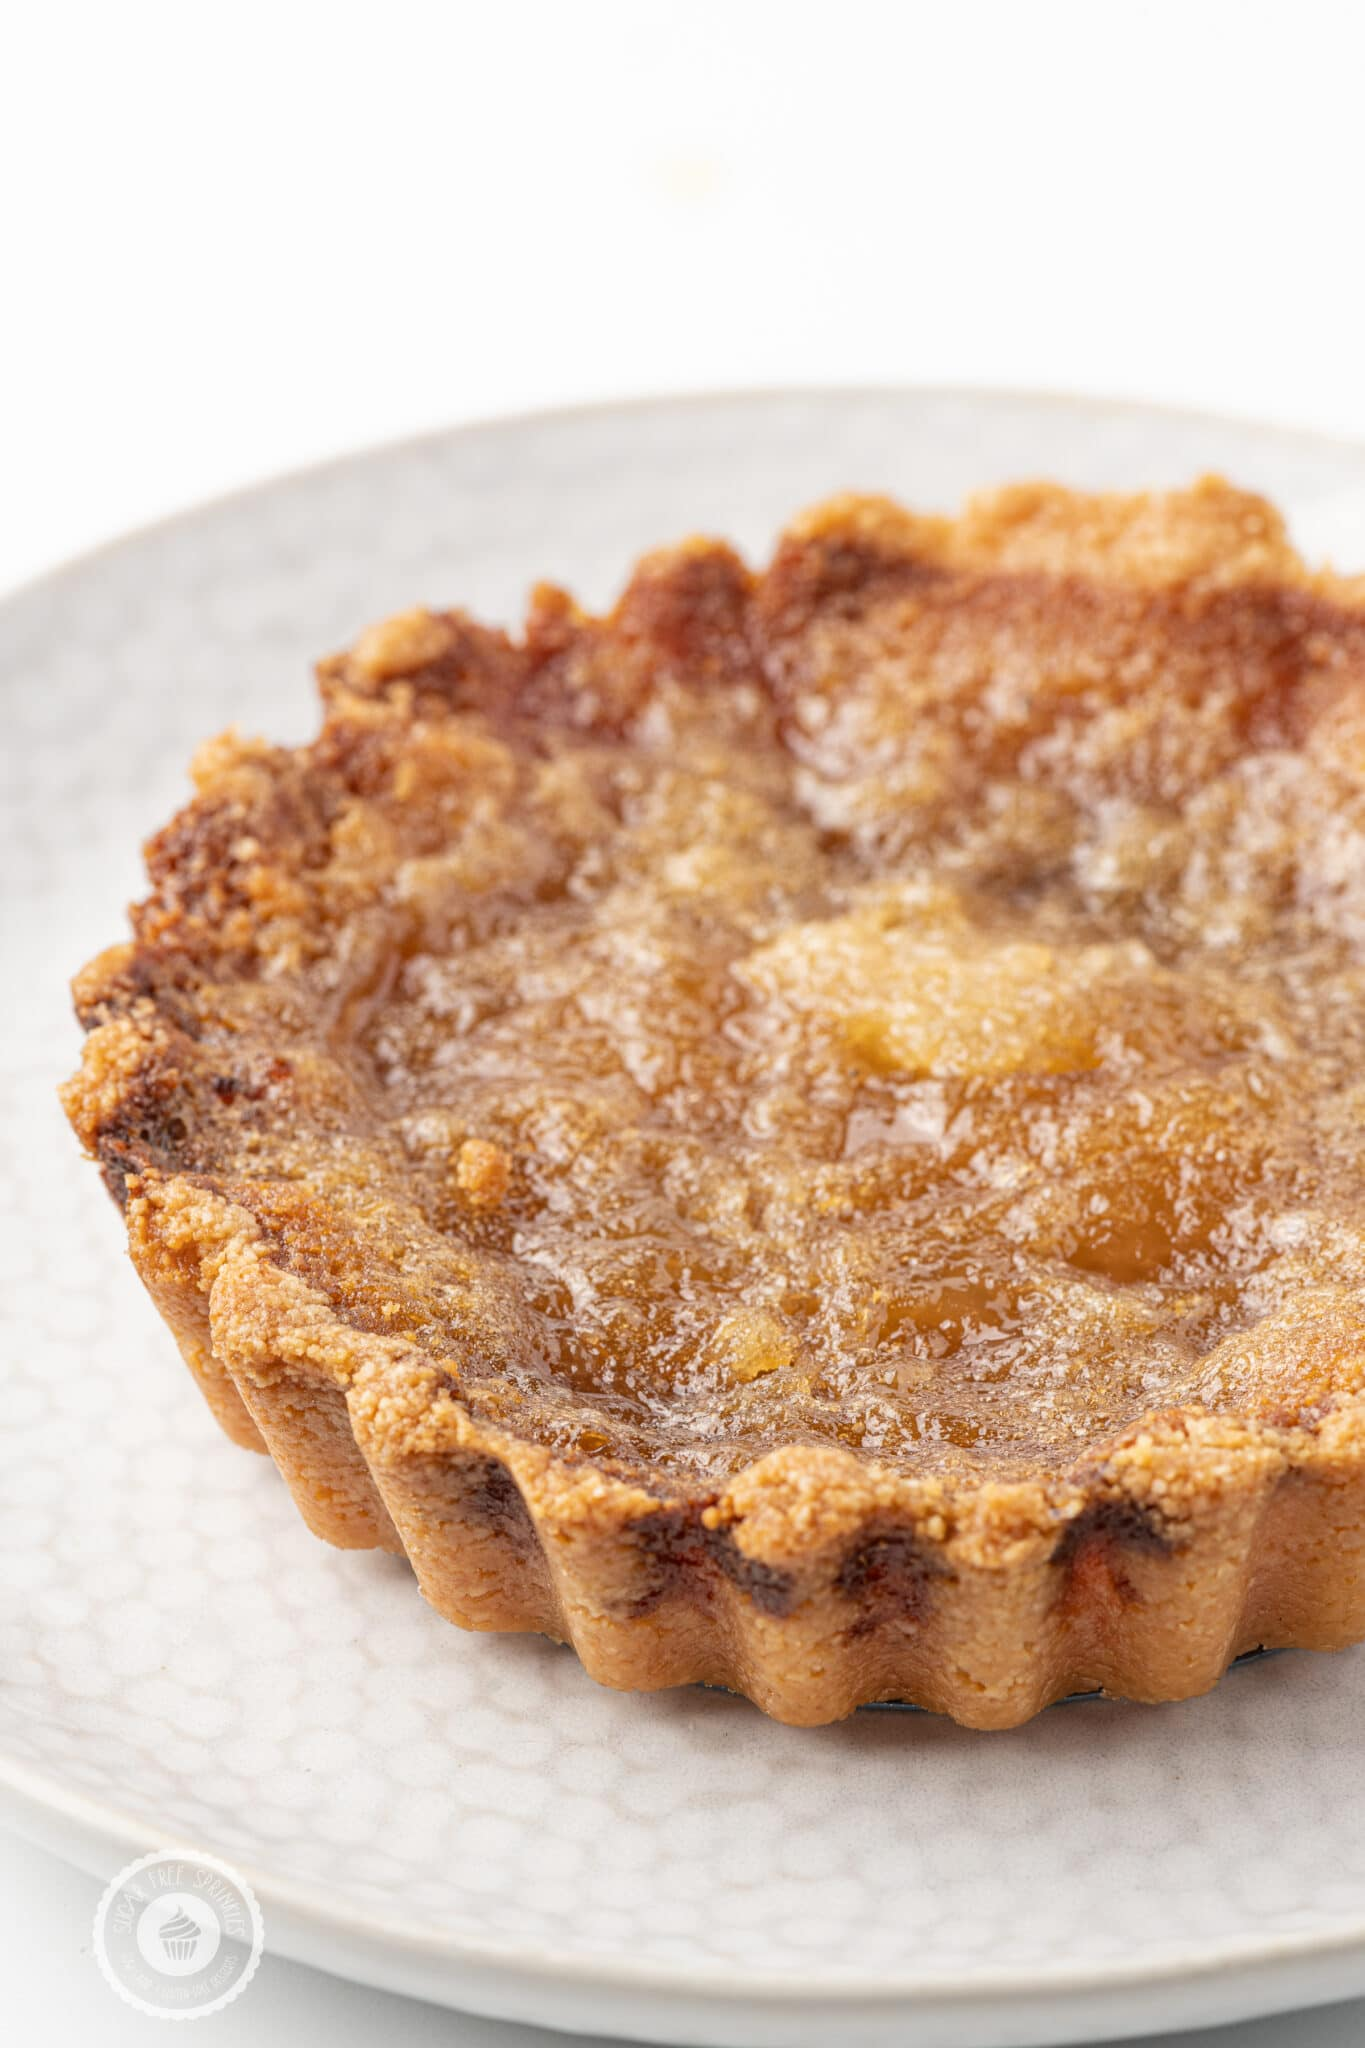 Golden brown sugar-free butter tart on a white plate against a bright white background.